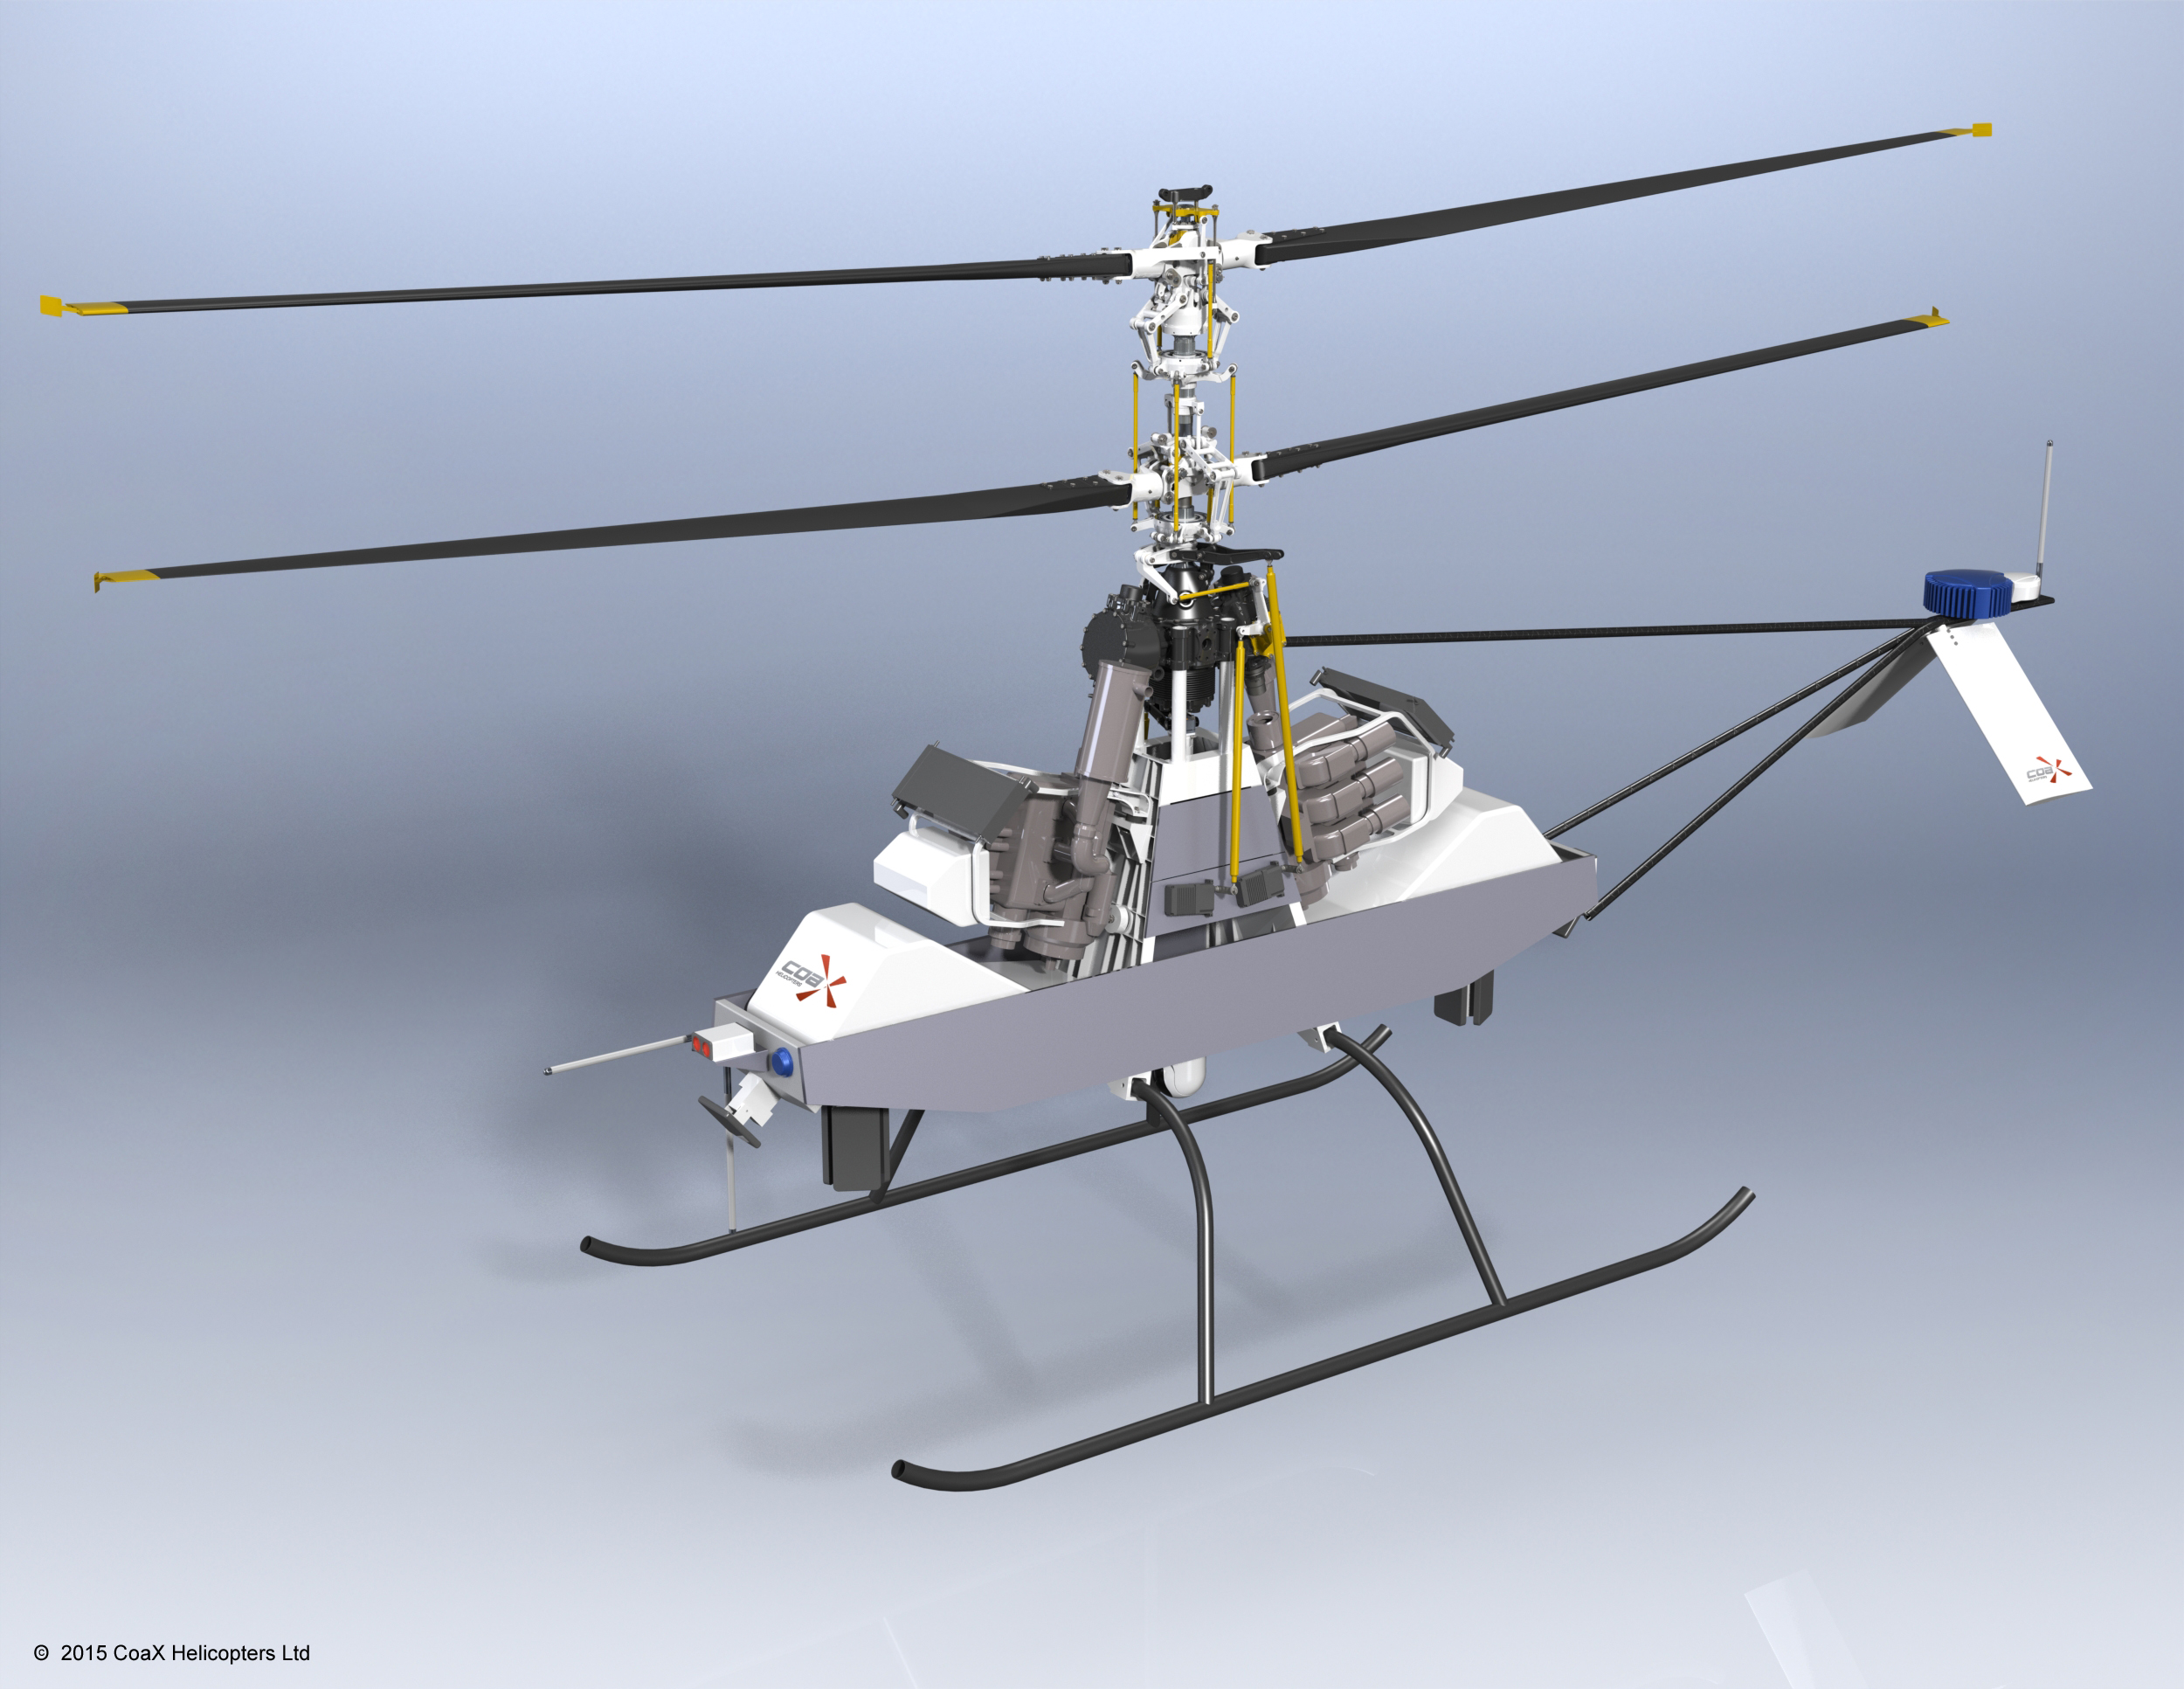 lte helicopter with Coax Helicopters Unmanned Concepts on Coquitlam 1  mand together with Gold Plated Lamborghini Cell Phones And Tablet For Russia as well Smartphone Drones With Cameras moreover Cell Phone Icons in addition State Of Inter  In India.